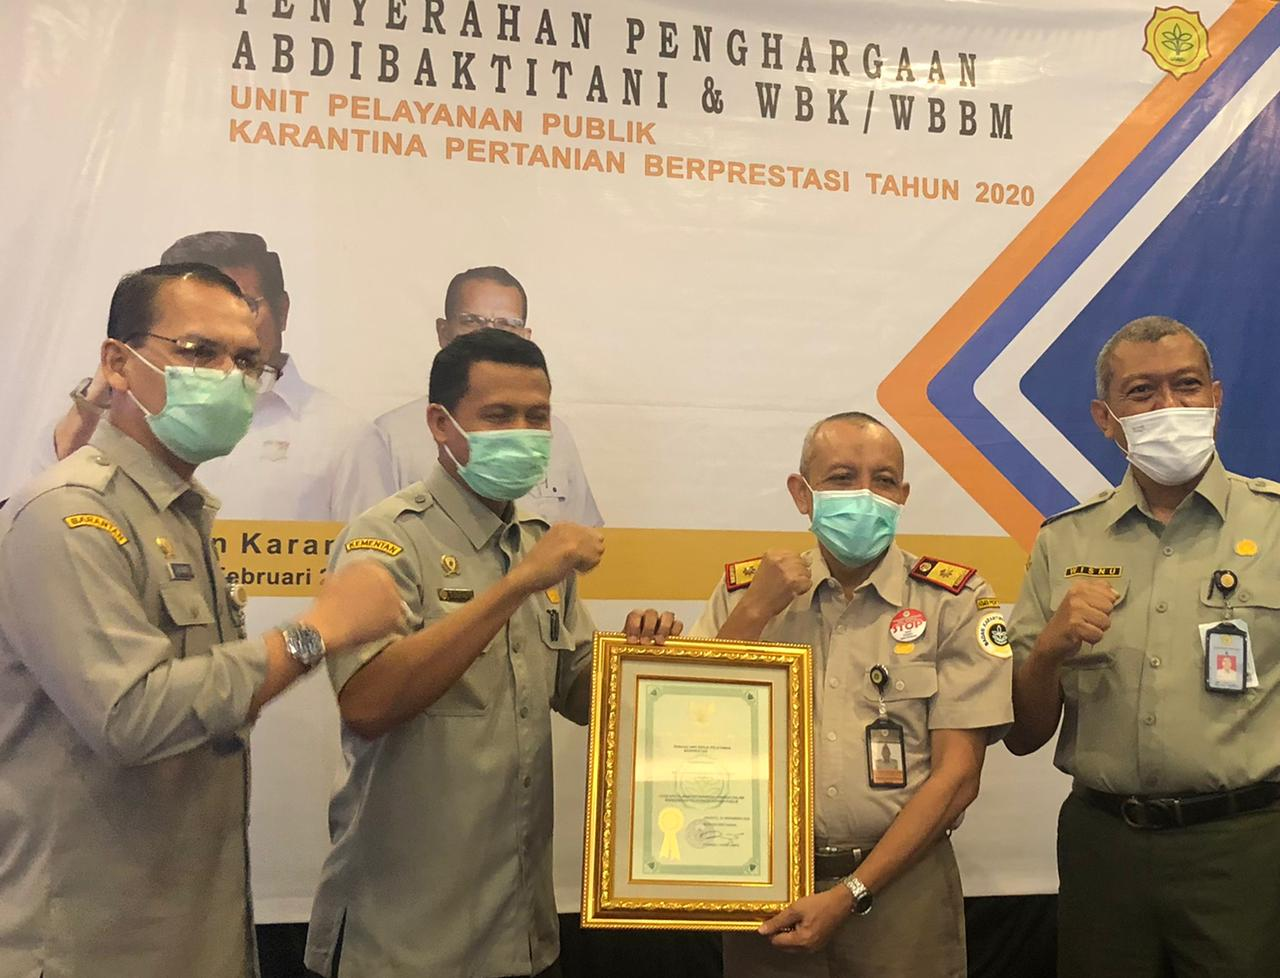 BBKP Surabaya Wins Two Awards at the same time from the Ministry of Agriculture, RB and the Ministry of Agriculture